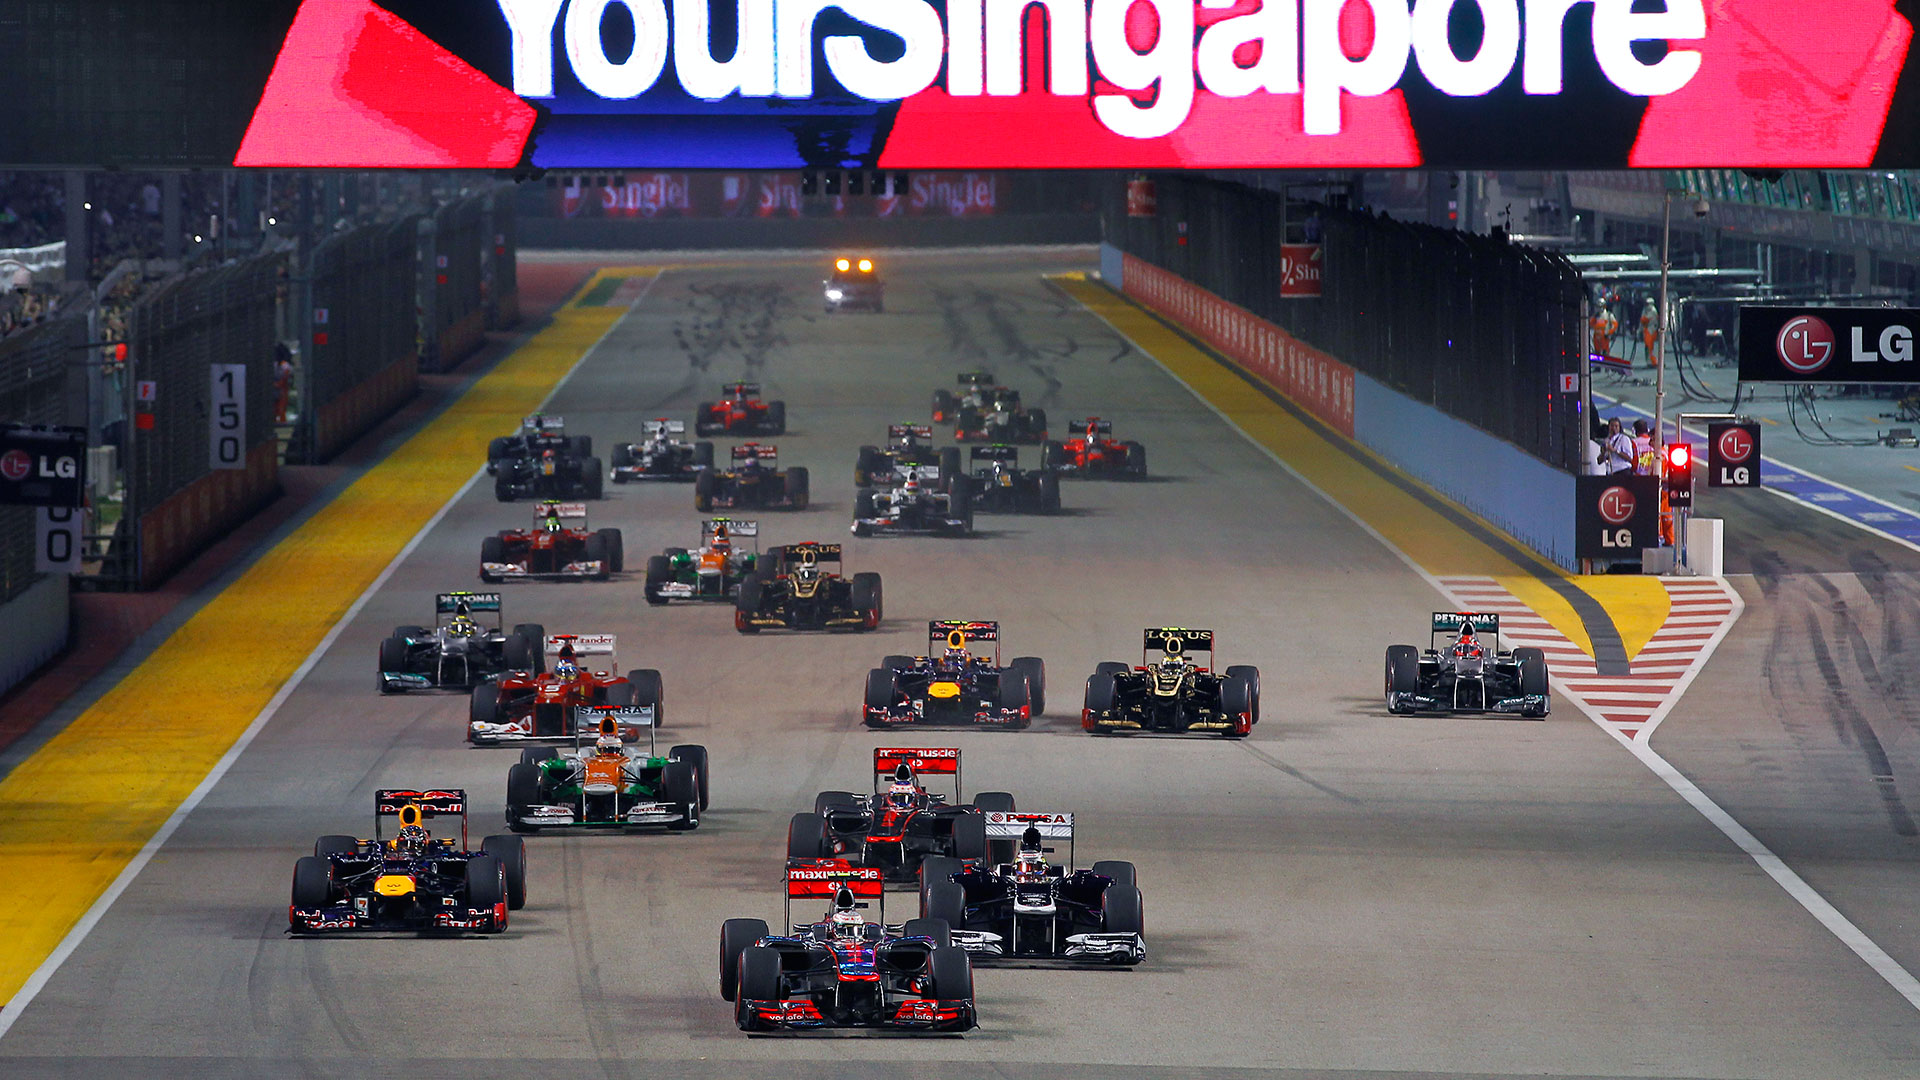 [Imagen: F1-Fansite.com-2012-HD-Wallpapers-F1-GP-...ore_47.jpg]